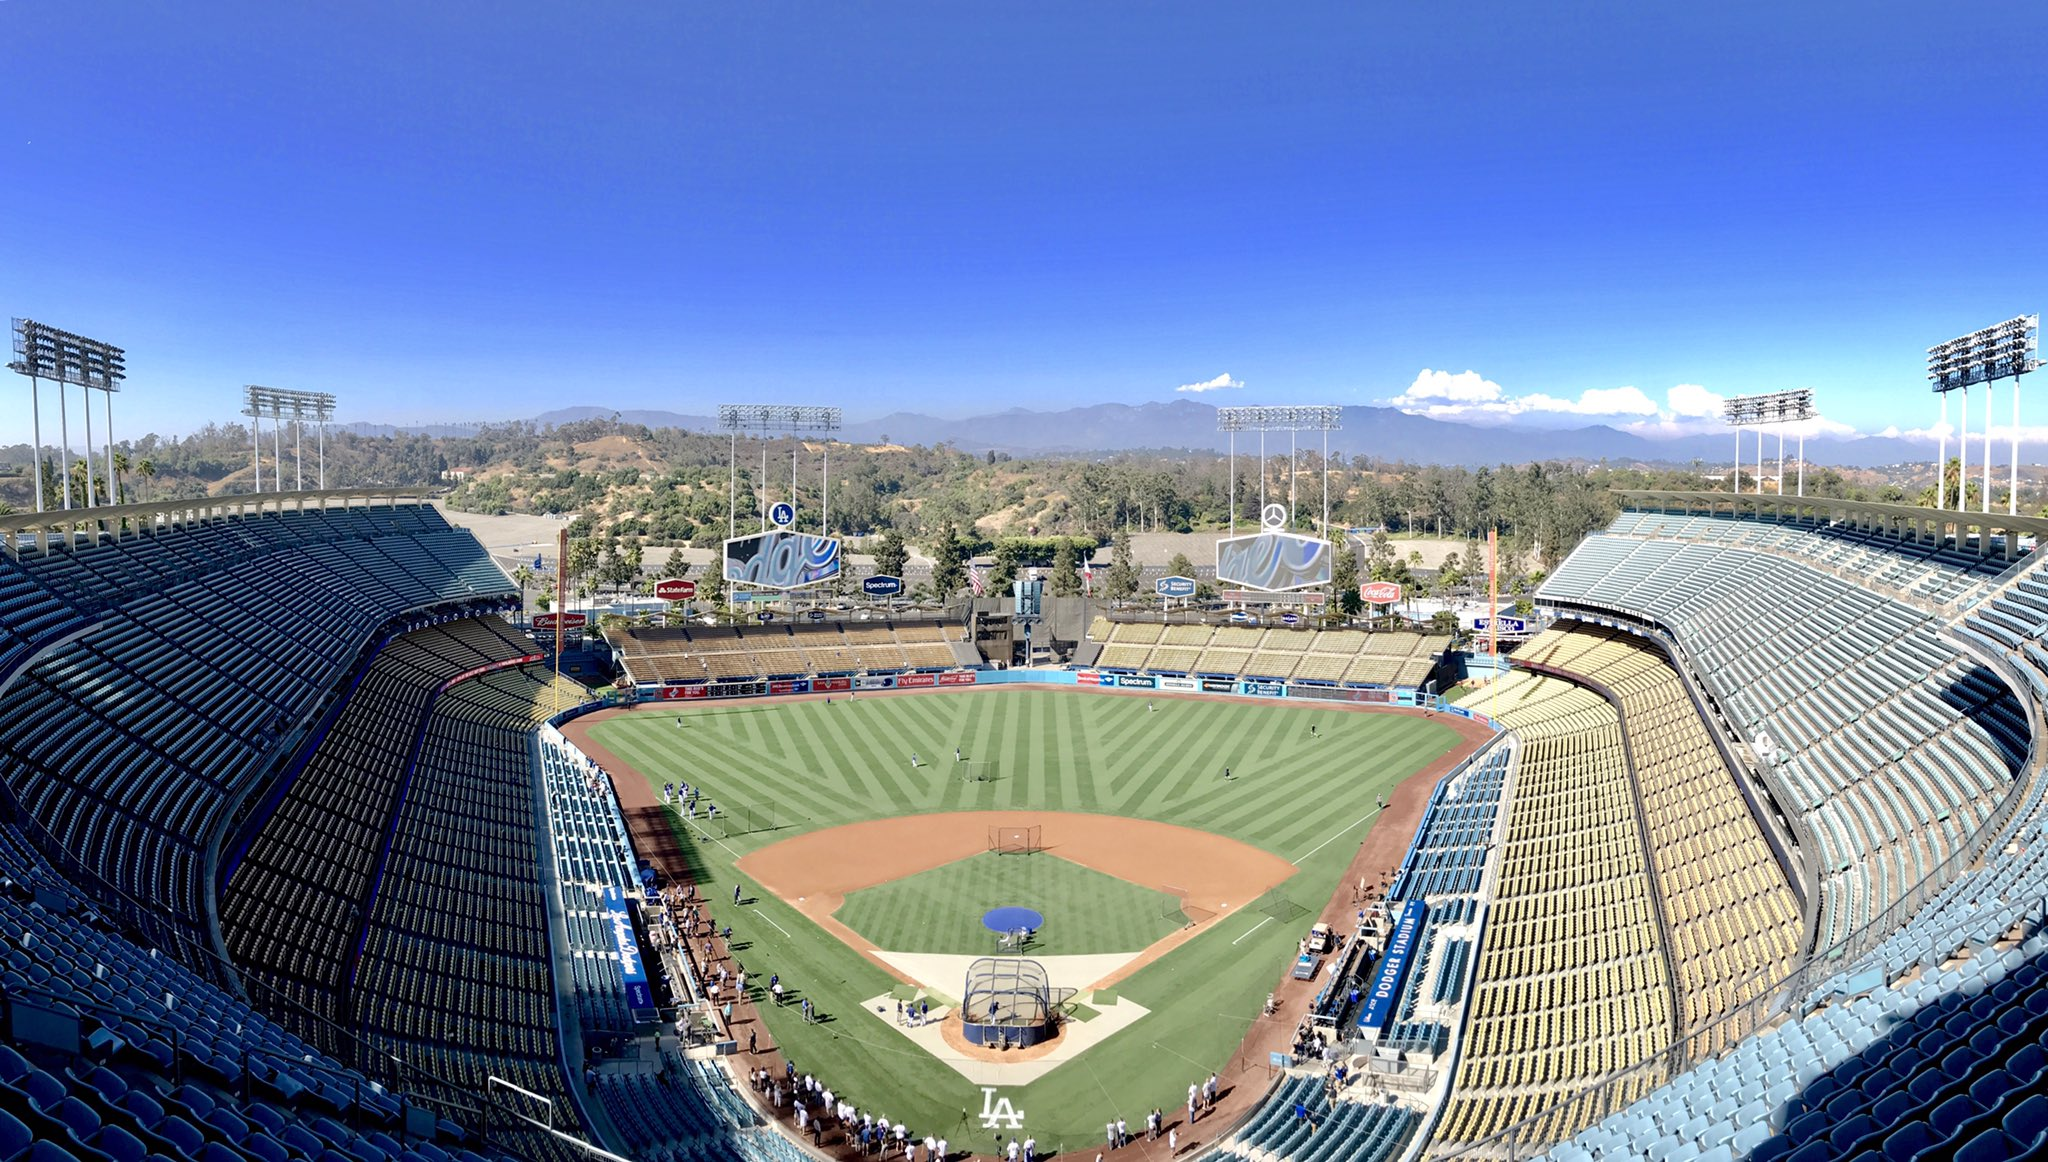 There's no place like home. �� #LetsGoDodgers https://t.co/XCVgoVgBTS